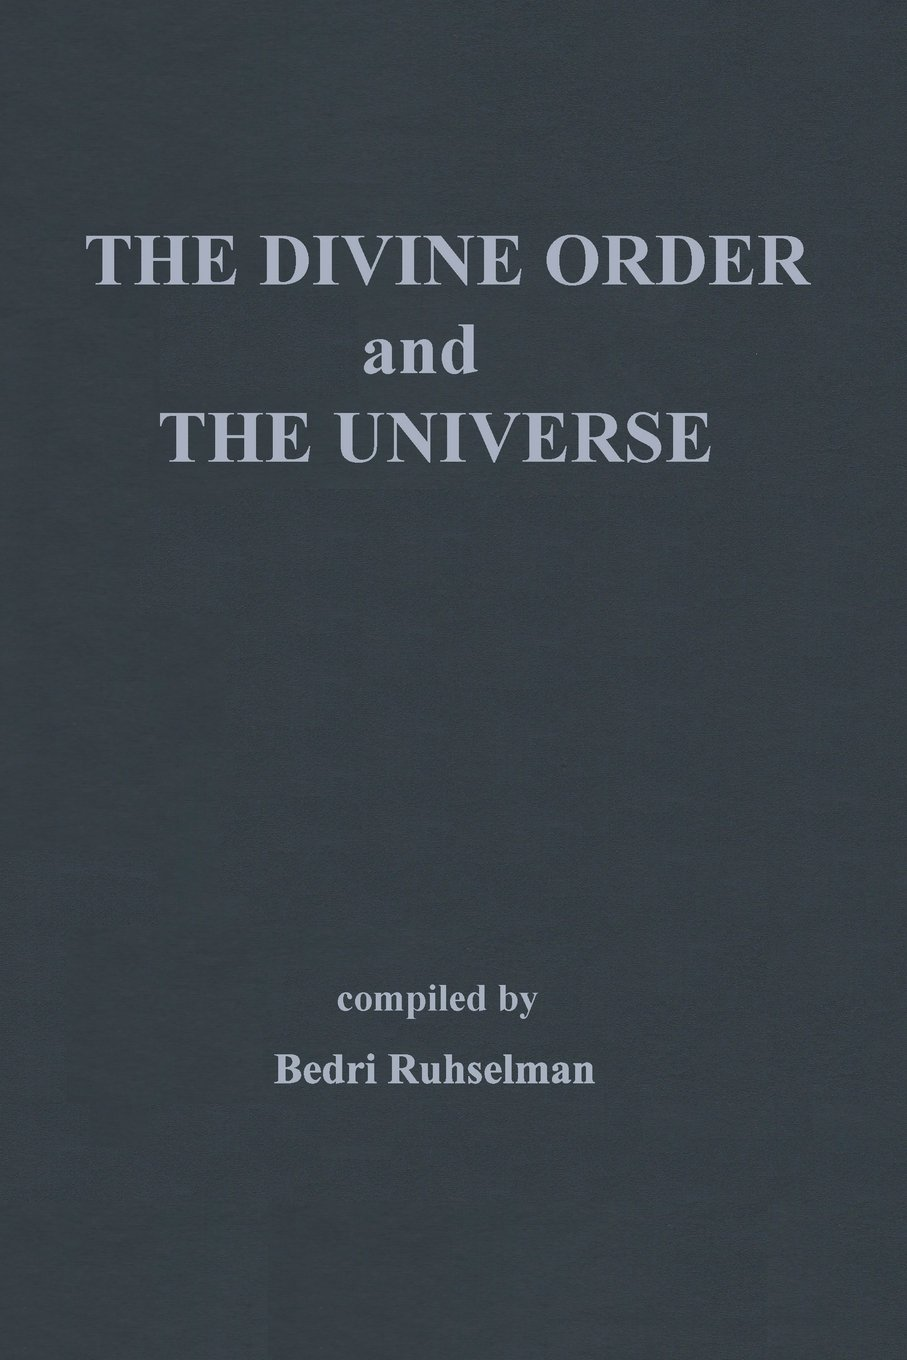 on the divine order and the universe